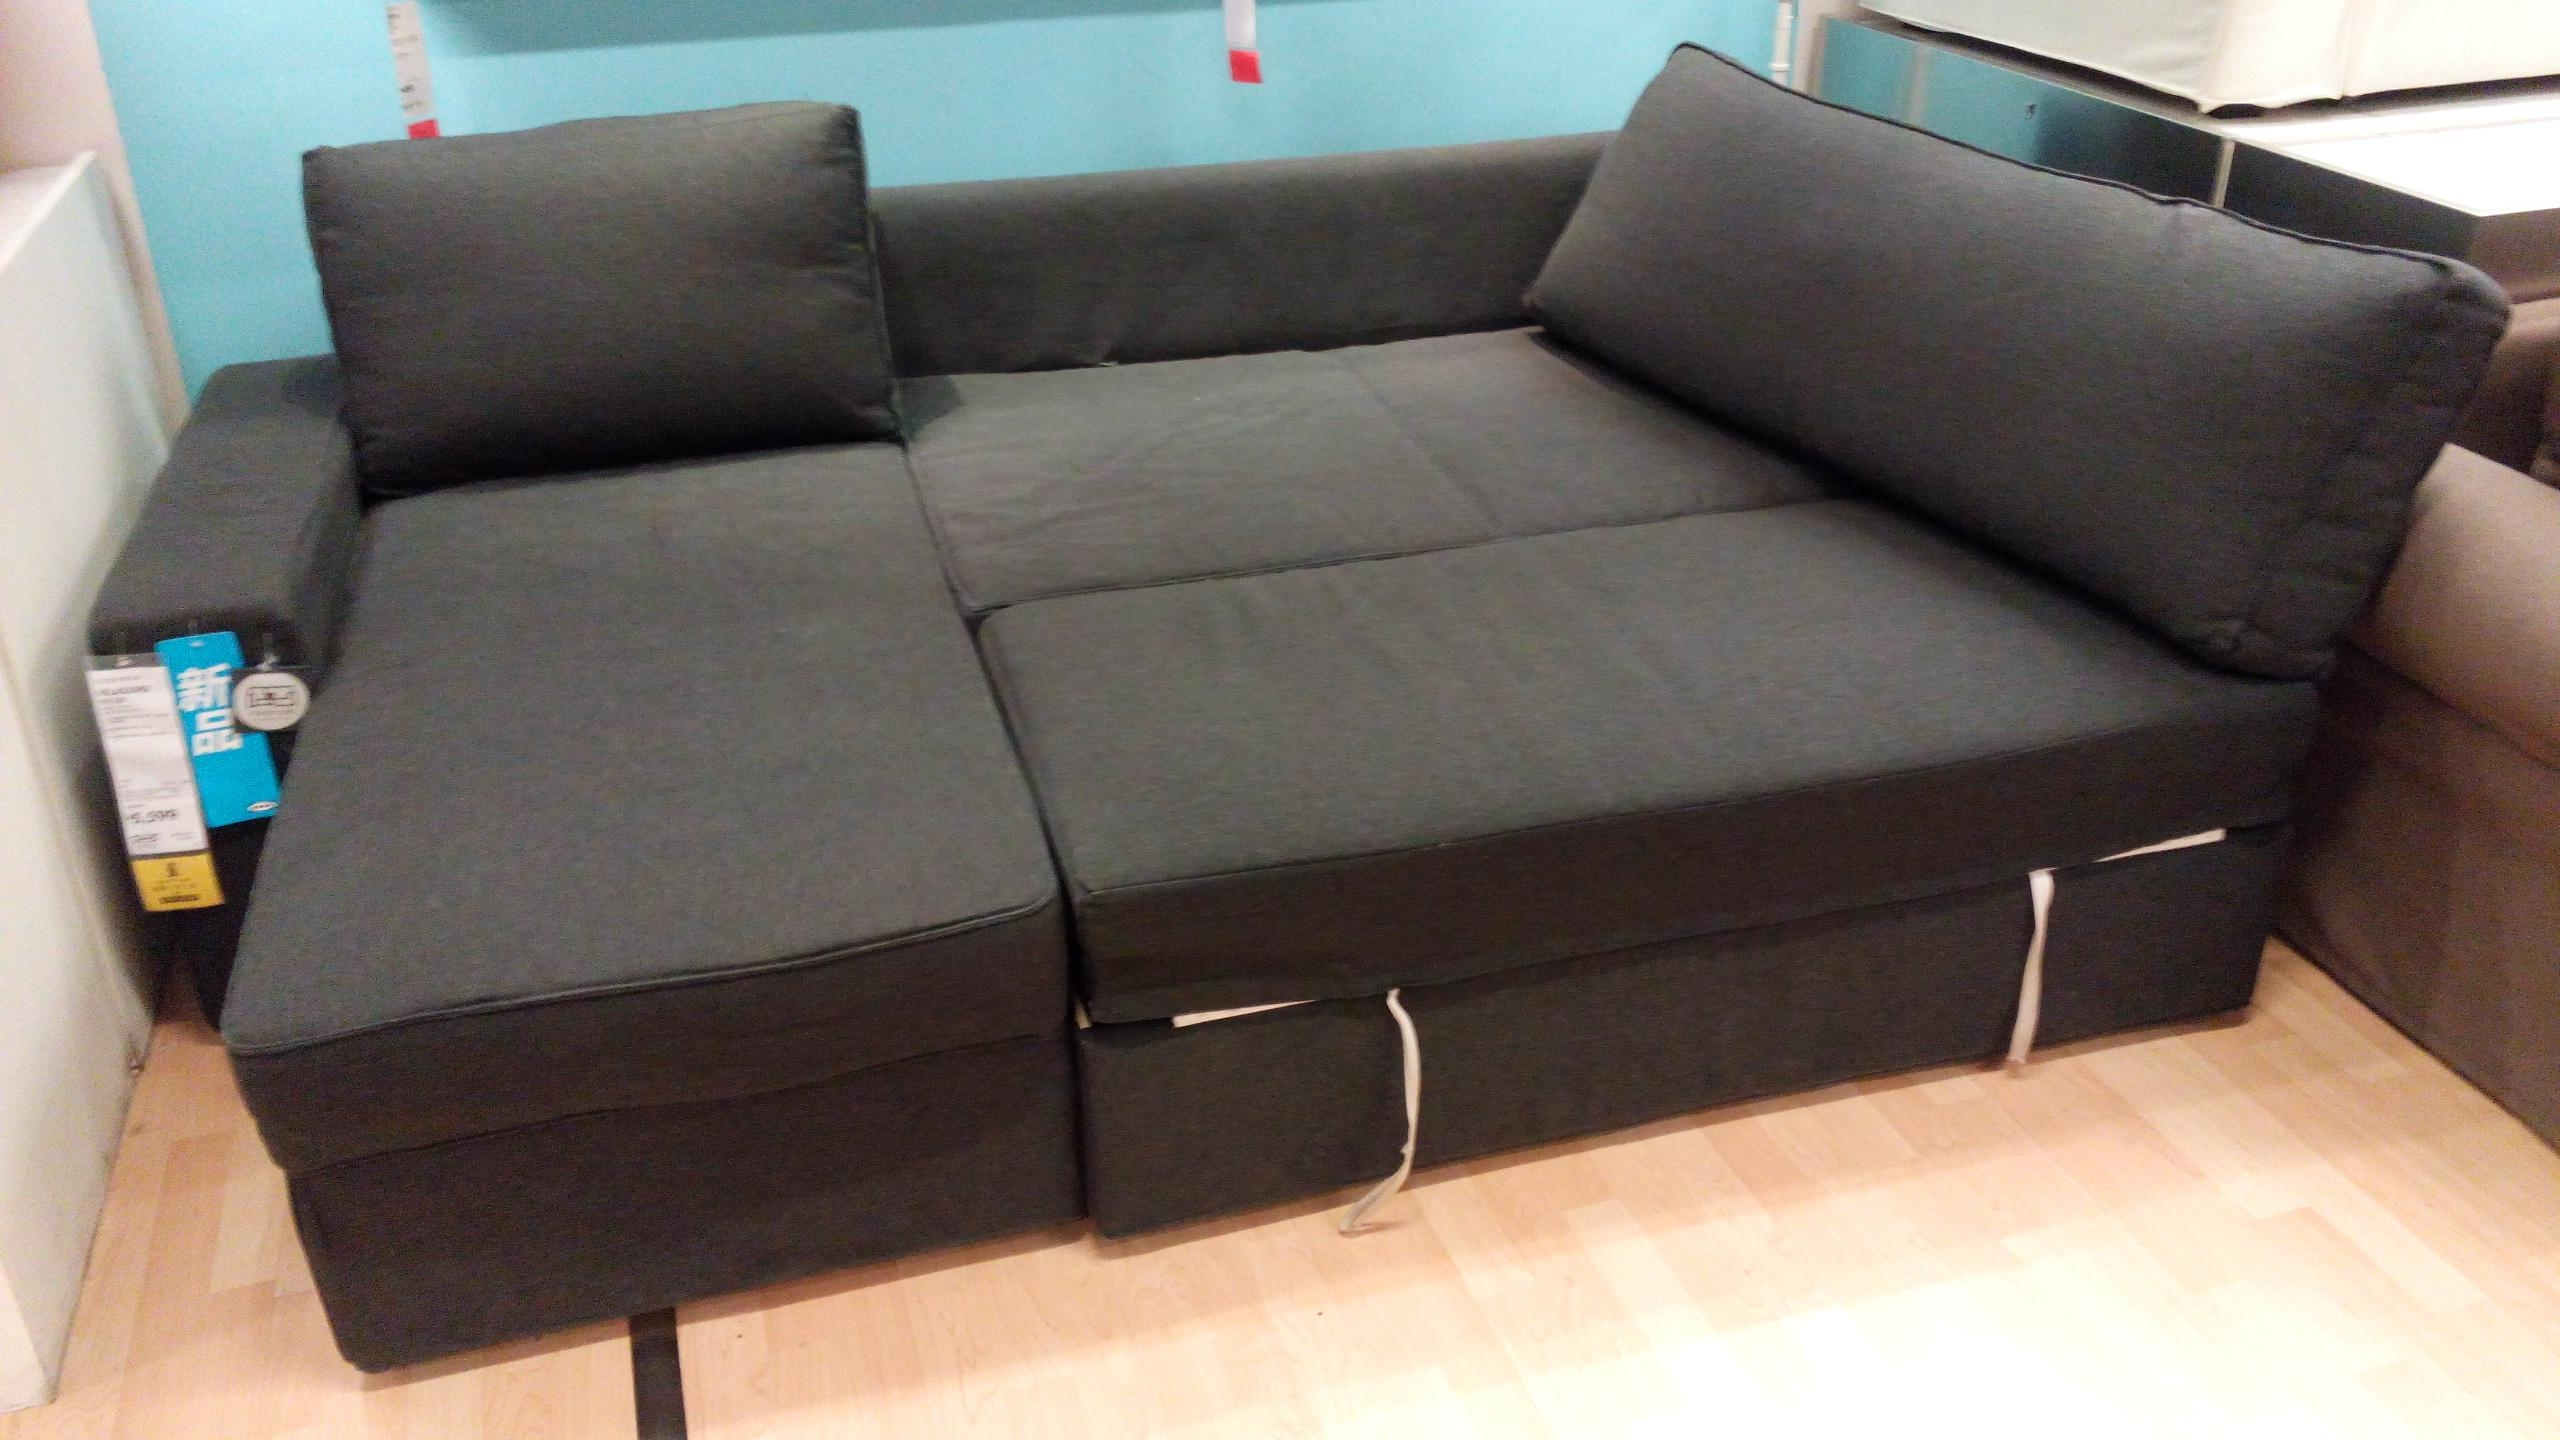 Ikea Vilasund And Backabro Review – Return Of The Sofa Bed Clones! For Chaise Longue Sofa Beds (View 14 of 20)